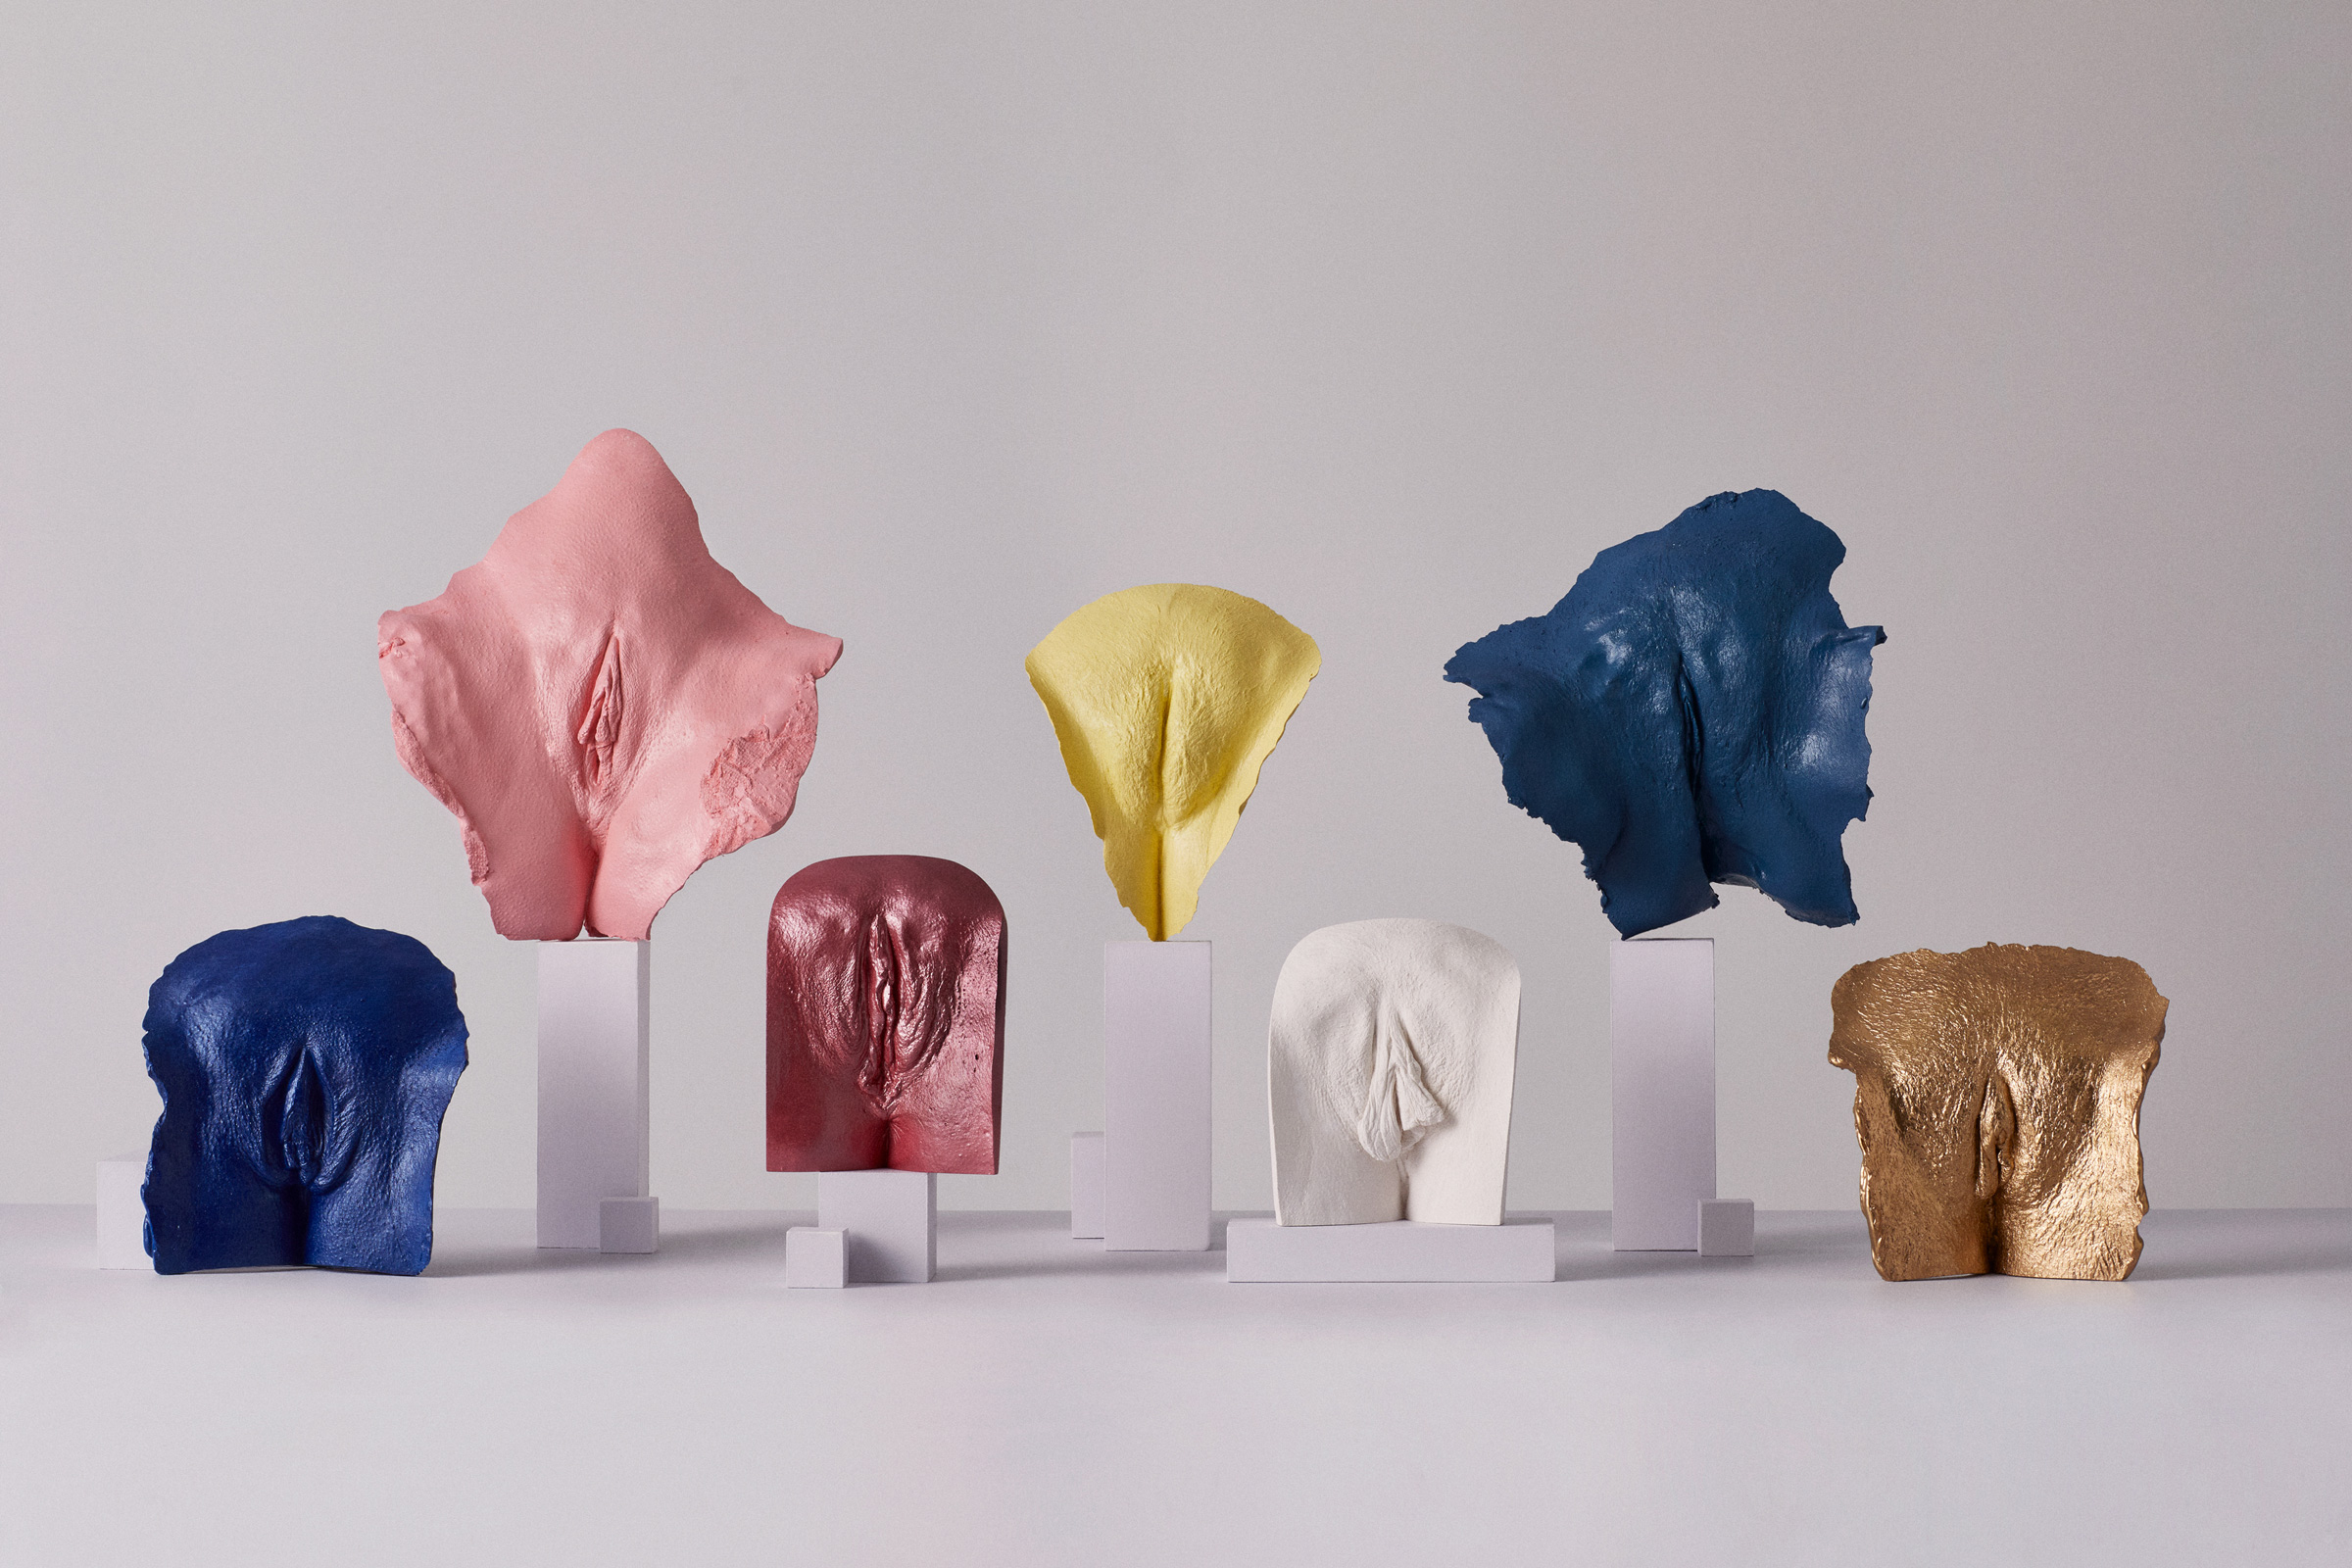 Several casts of different vulvas stand around on plinths, showcasing the natural variety of vulvas